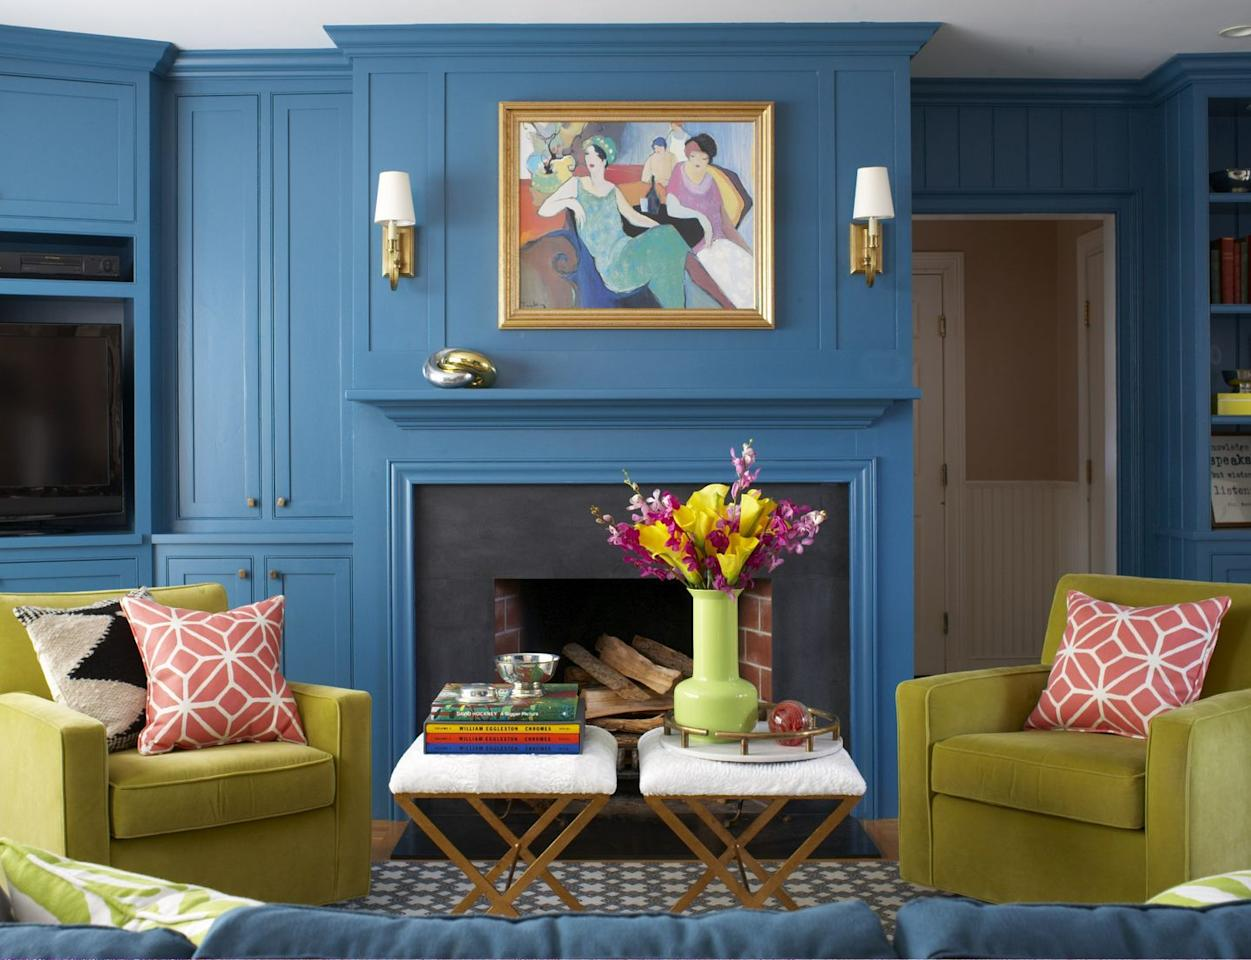 "<p>A deep, royal blue sets the tone for this family room from <a href=""https://deringhall.com/interior-designers/liz-caan-co"" target=""_parent"">Liz Caan & Co</a>.</p>"